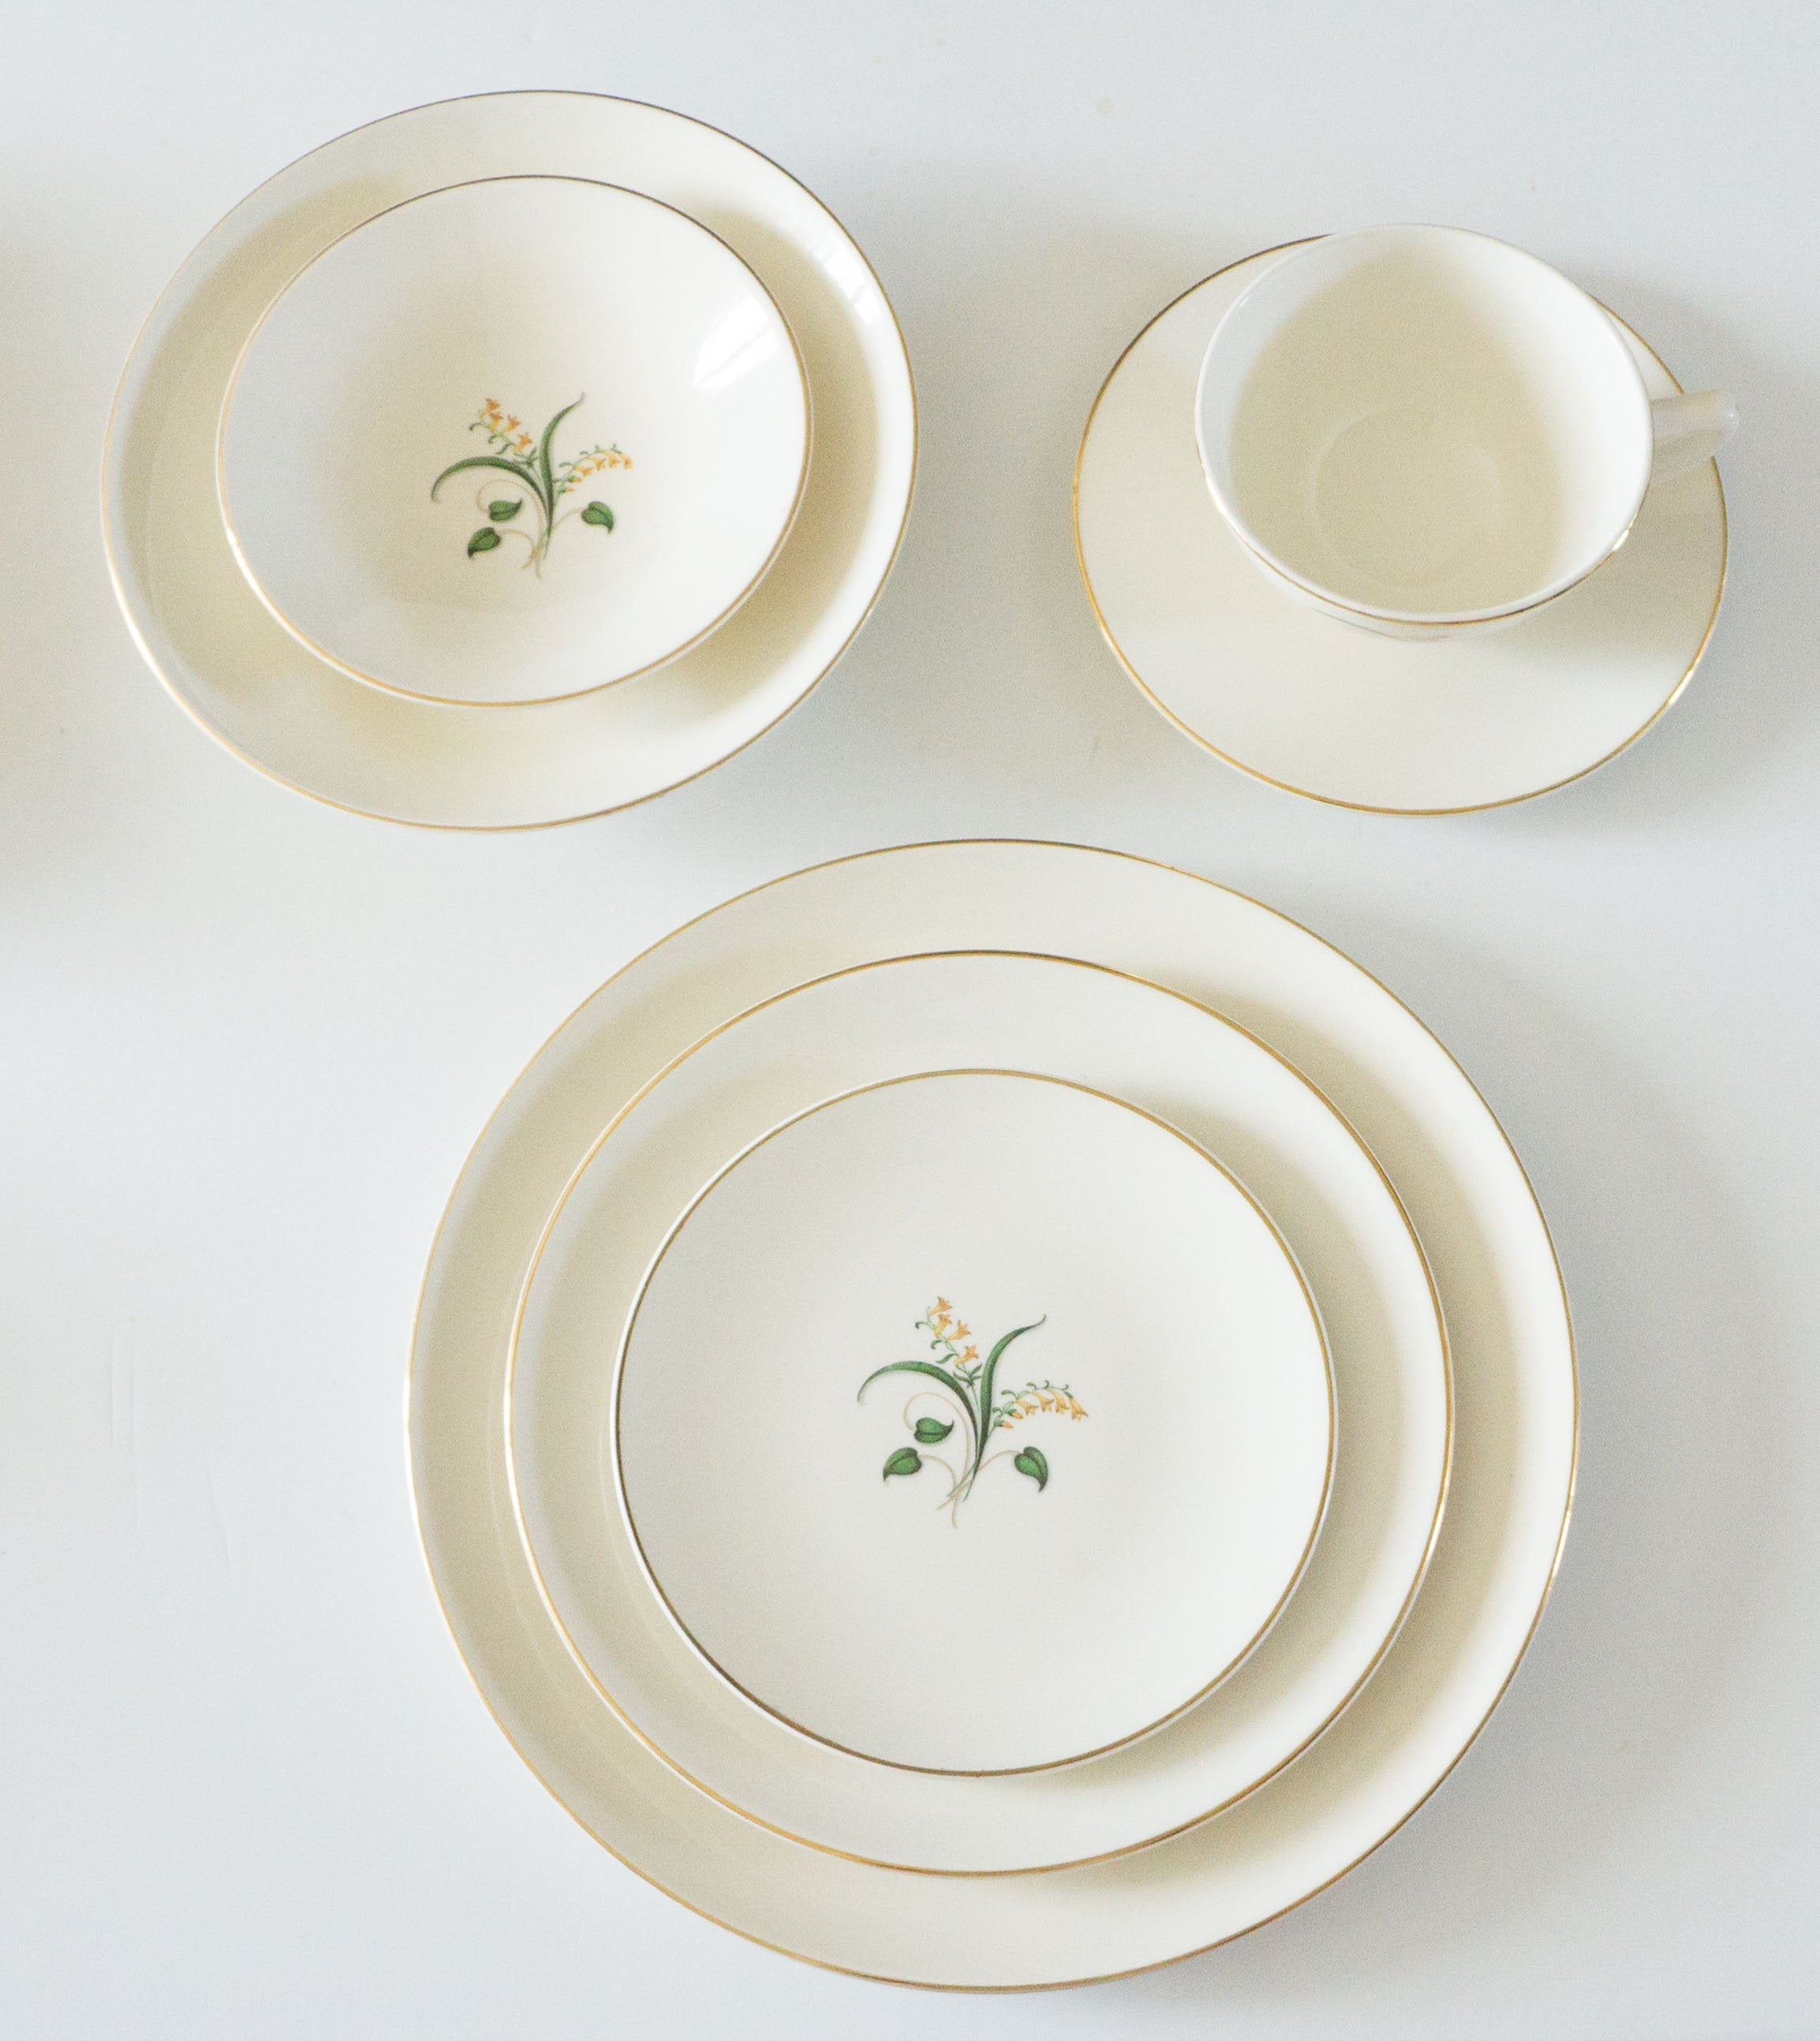 Vintage Forsythia by Knowles Pottery Co ca 1953 - Seven Piece Place Setting